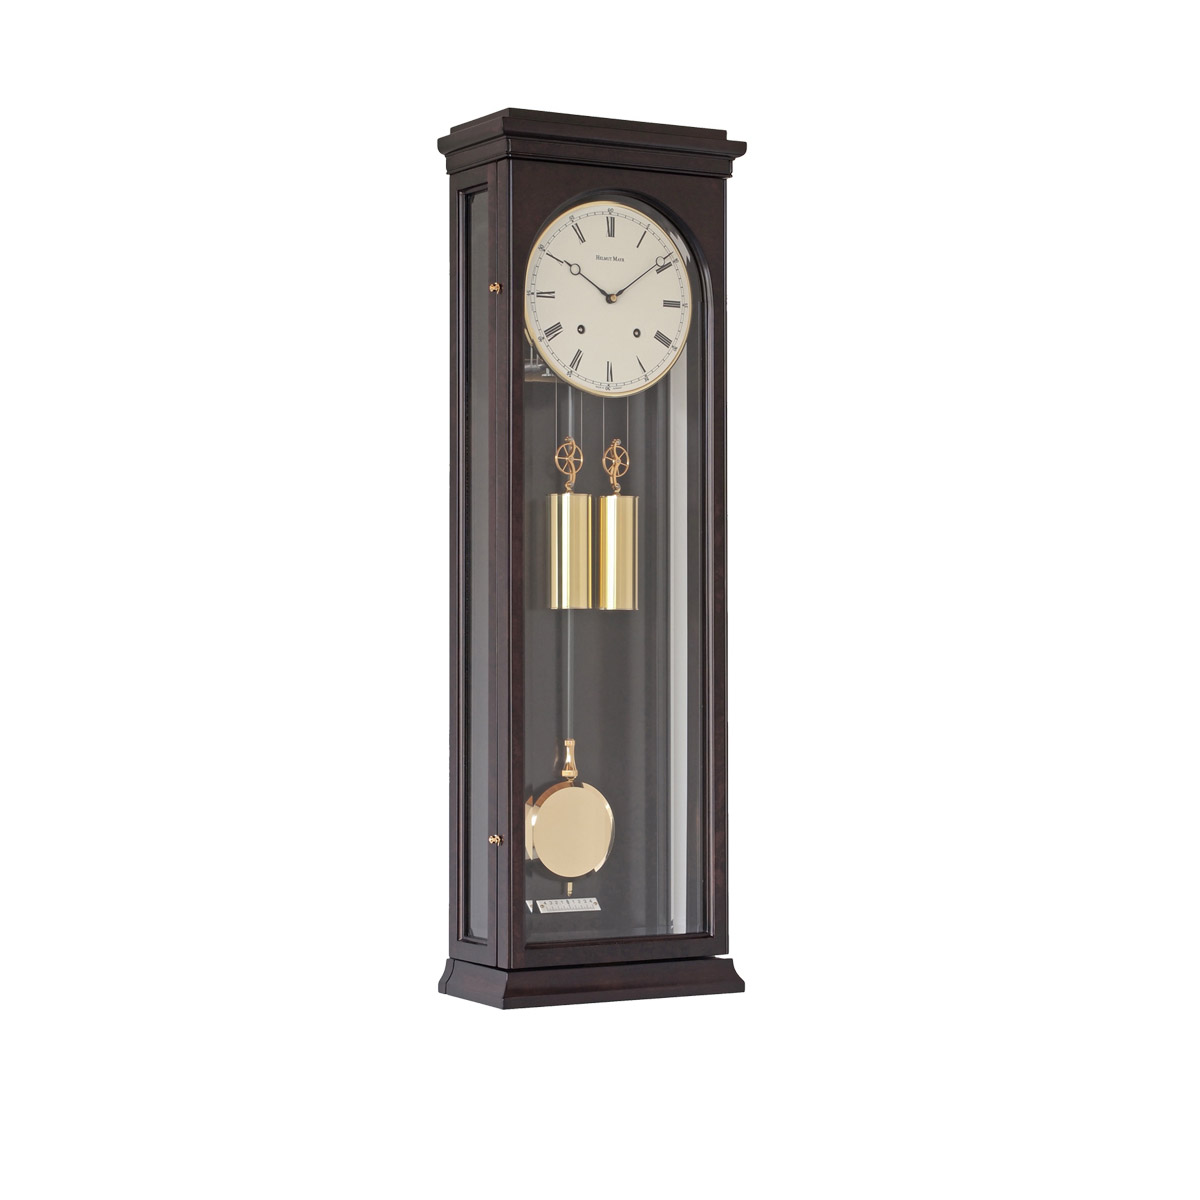 HAMPTON R1660  Regulator Wall Clock